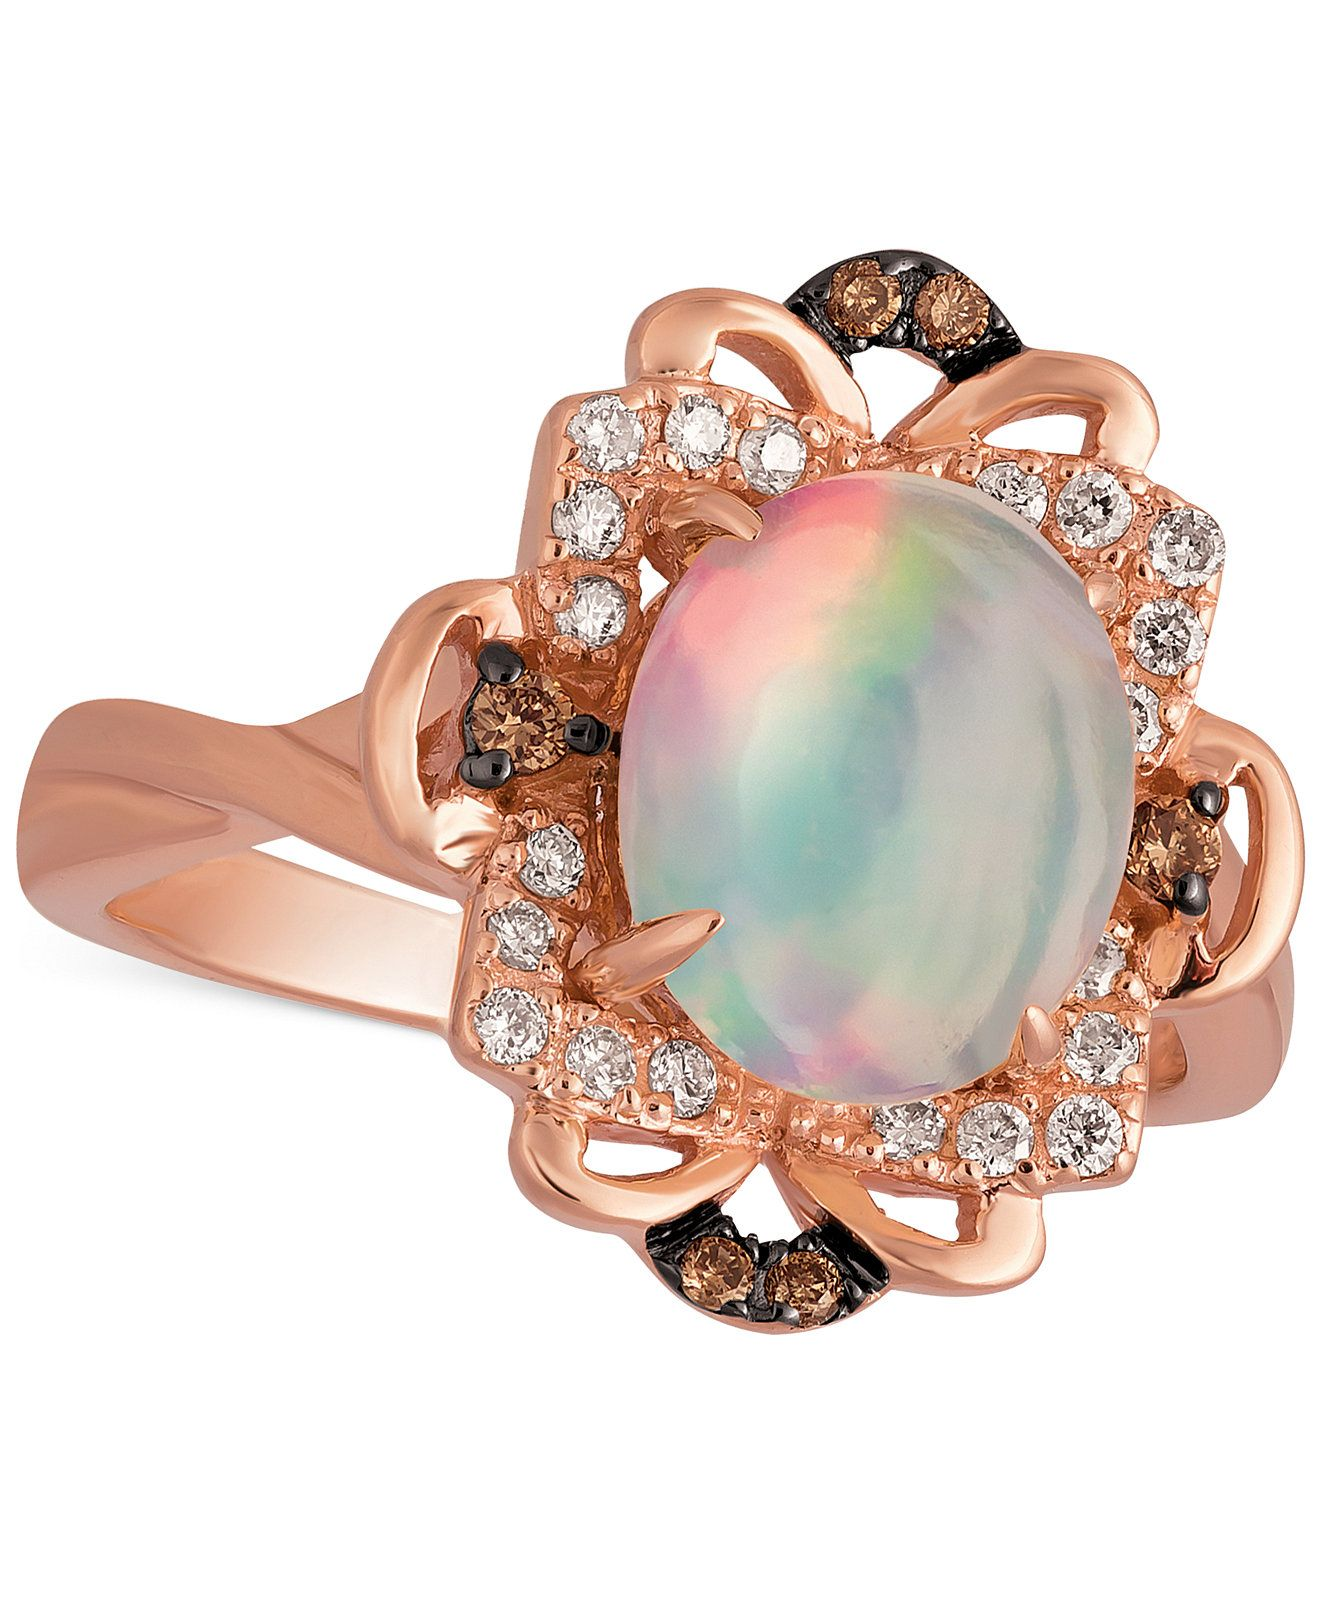 Le Vian Opal 115 ct tw and Diamond 16 ct tw Ring in